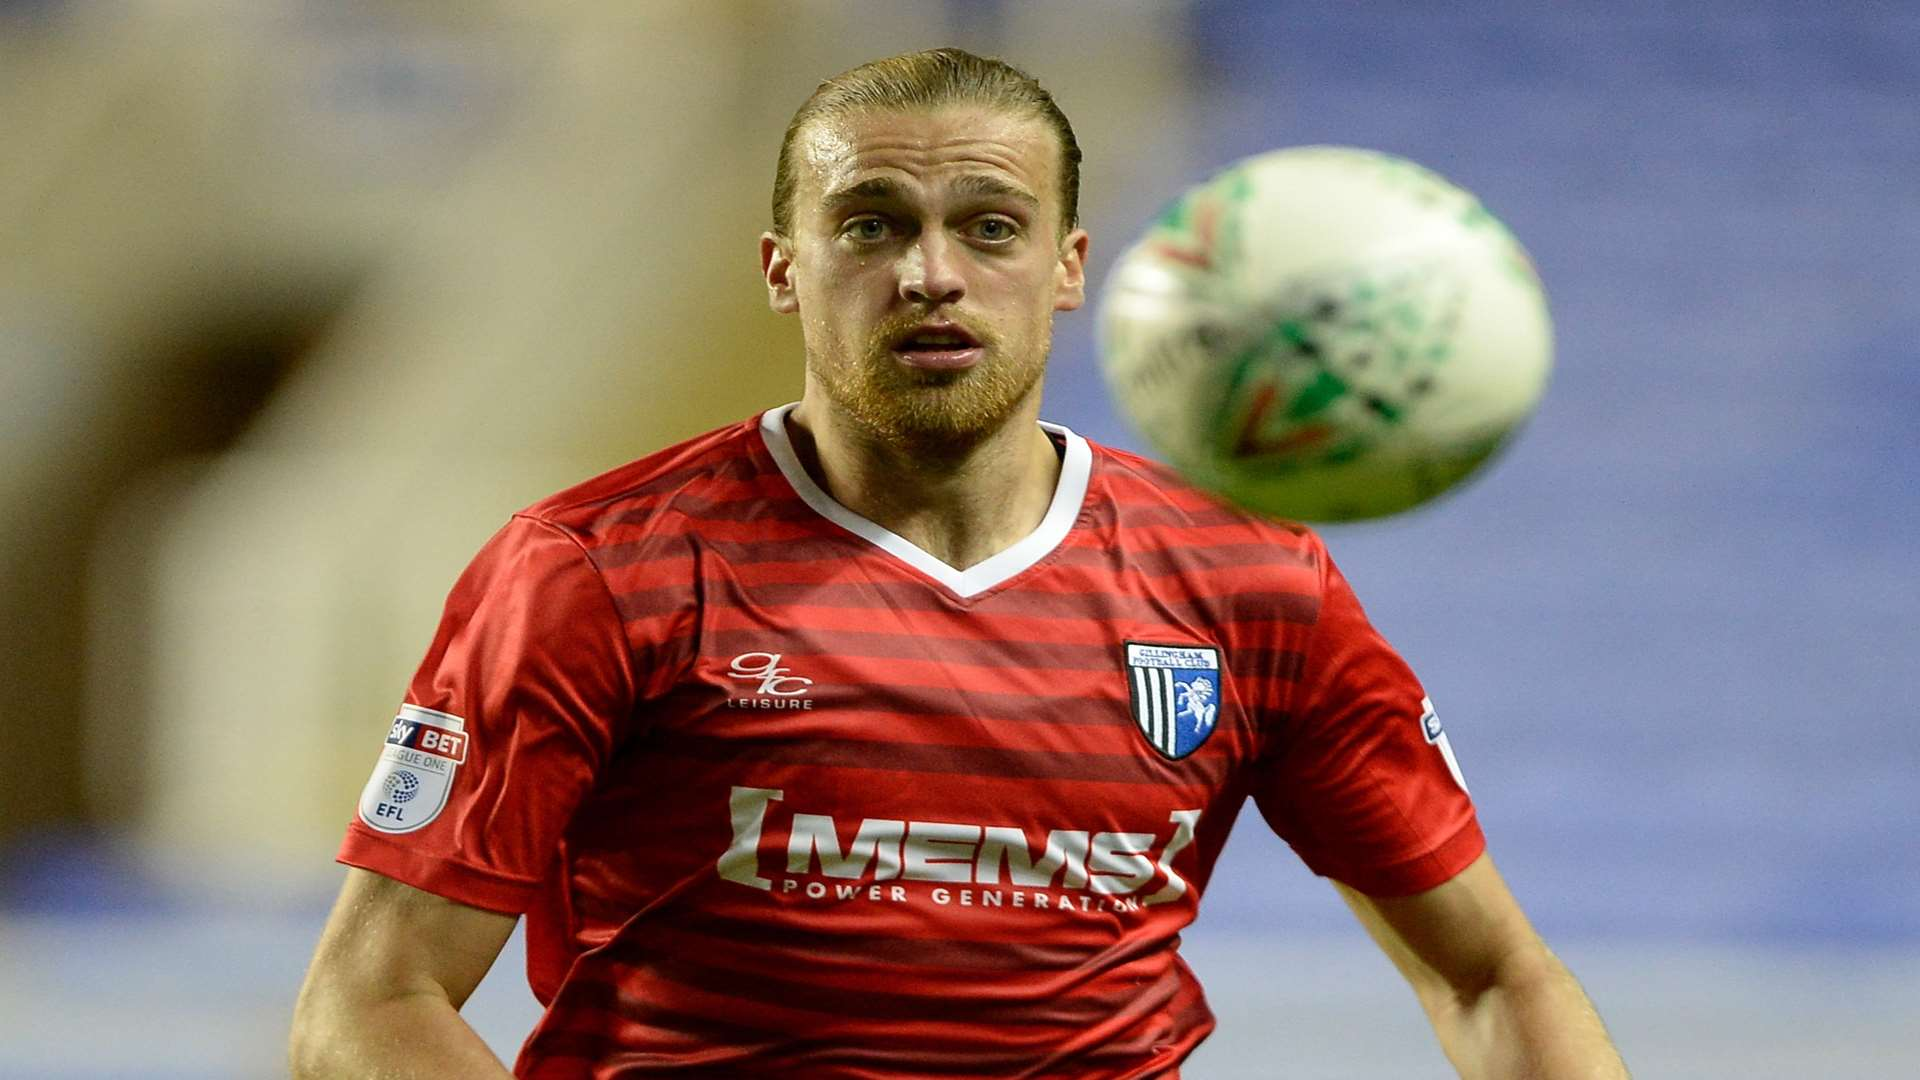 Striker Tom Eaves gives chase for Gills Picture: Ady Kerry